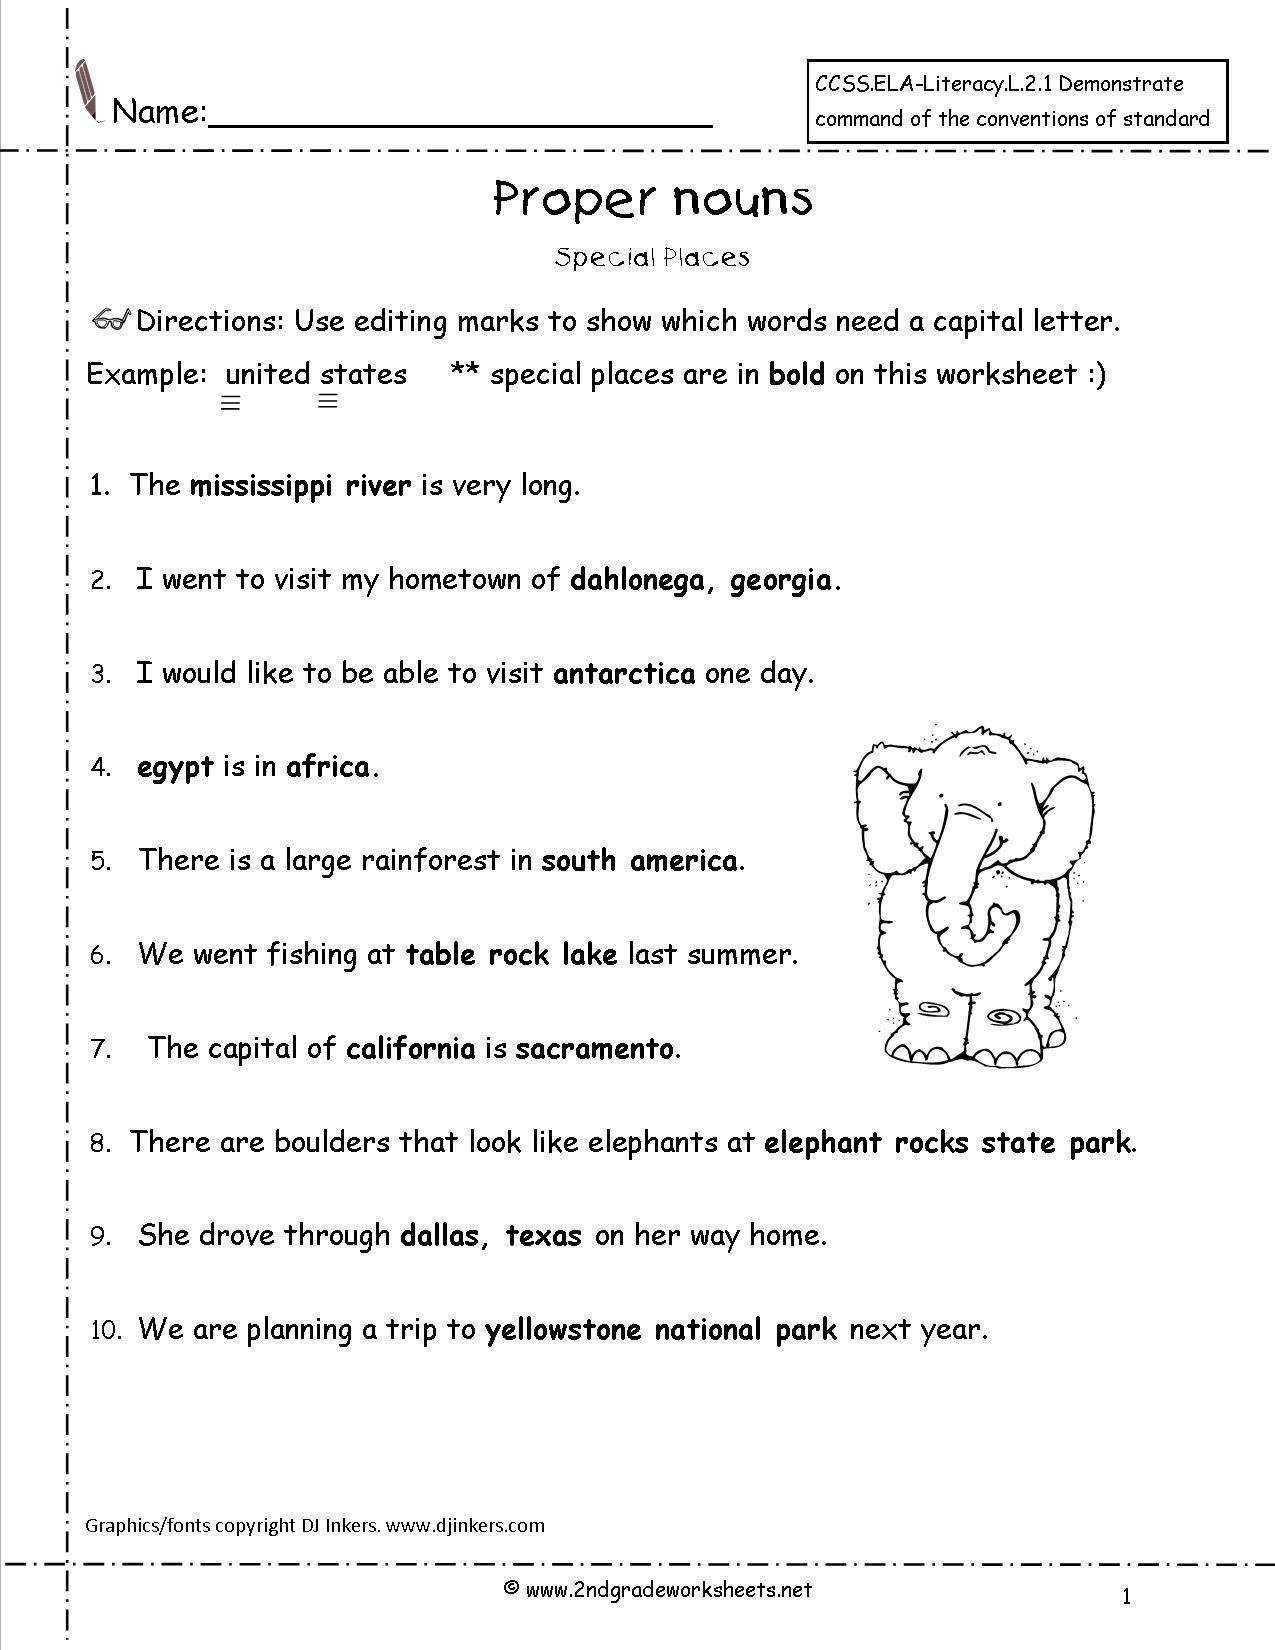 Proper Nouns Worksheet For 5th Grade